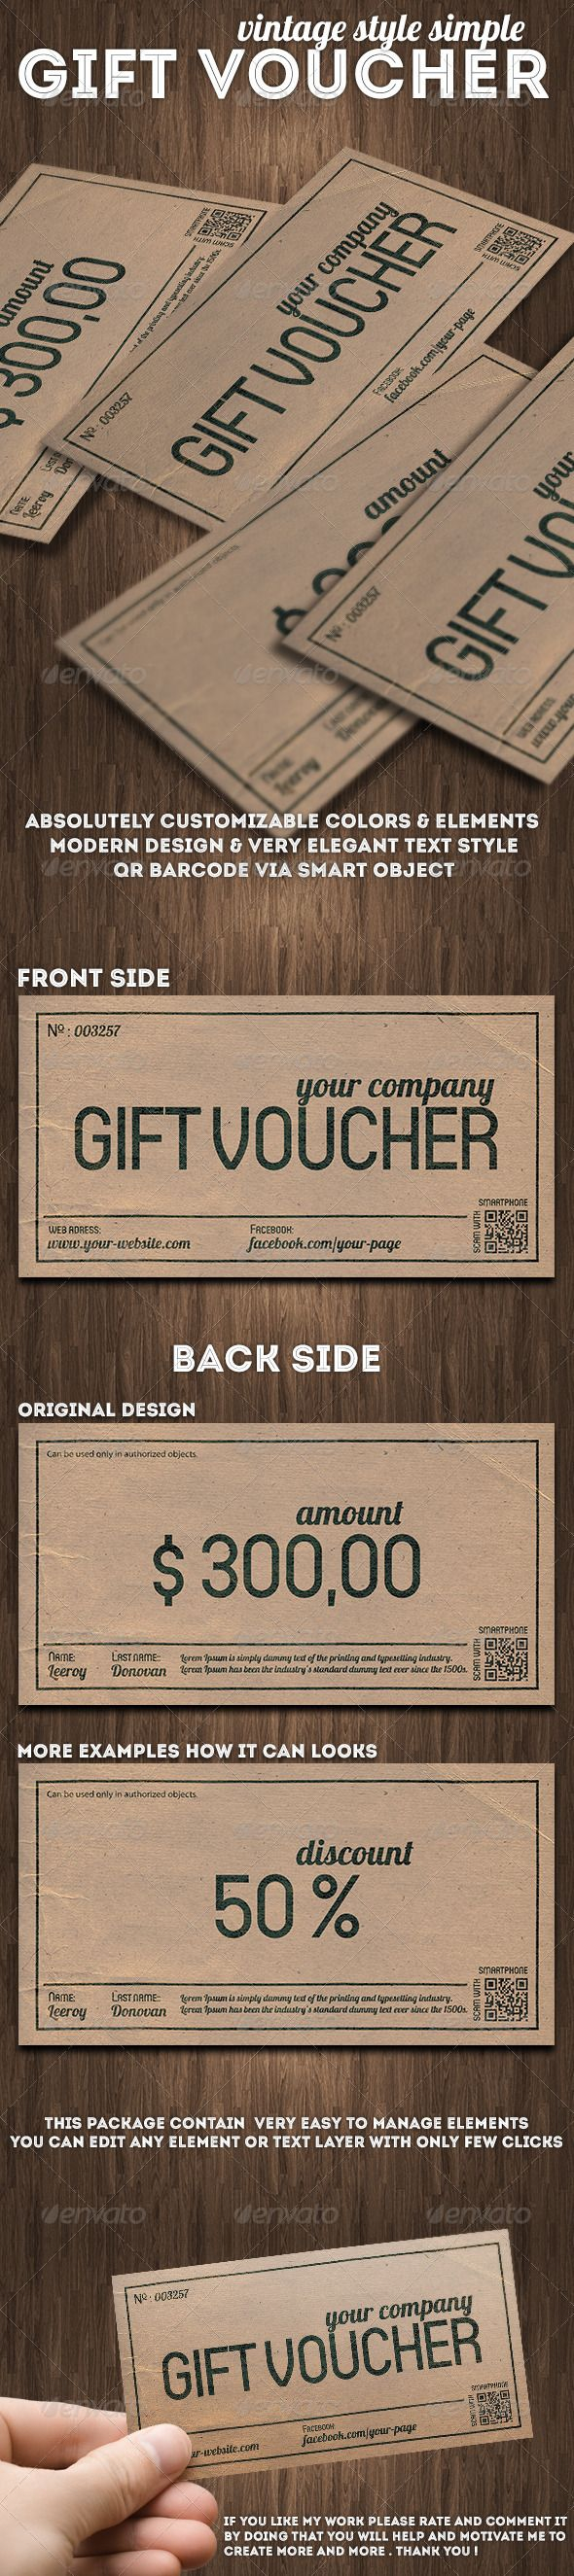 Vintage Style Gift Voucher or Discount Coupon PSD Template | More Info: http://graphicriver.net/item/vintage-style-gift-voucher-or-discount-coupon/7578728?WT.ac=category_thumb&WT.z_author=Tzochko&ref=ksioks